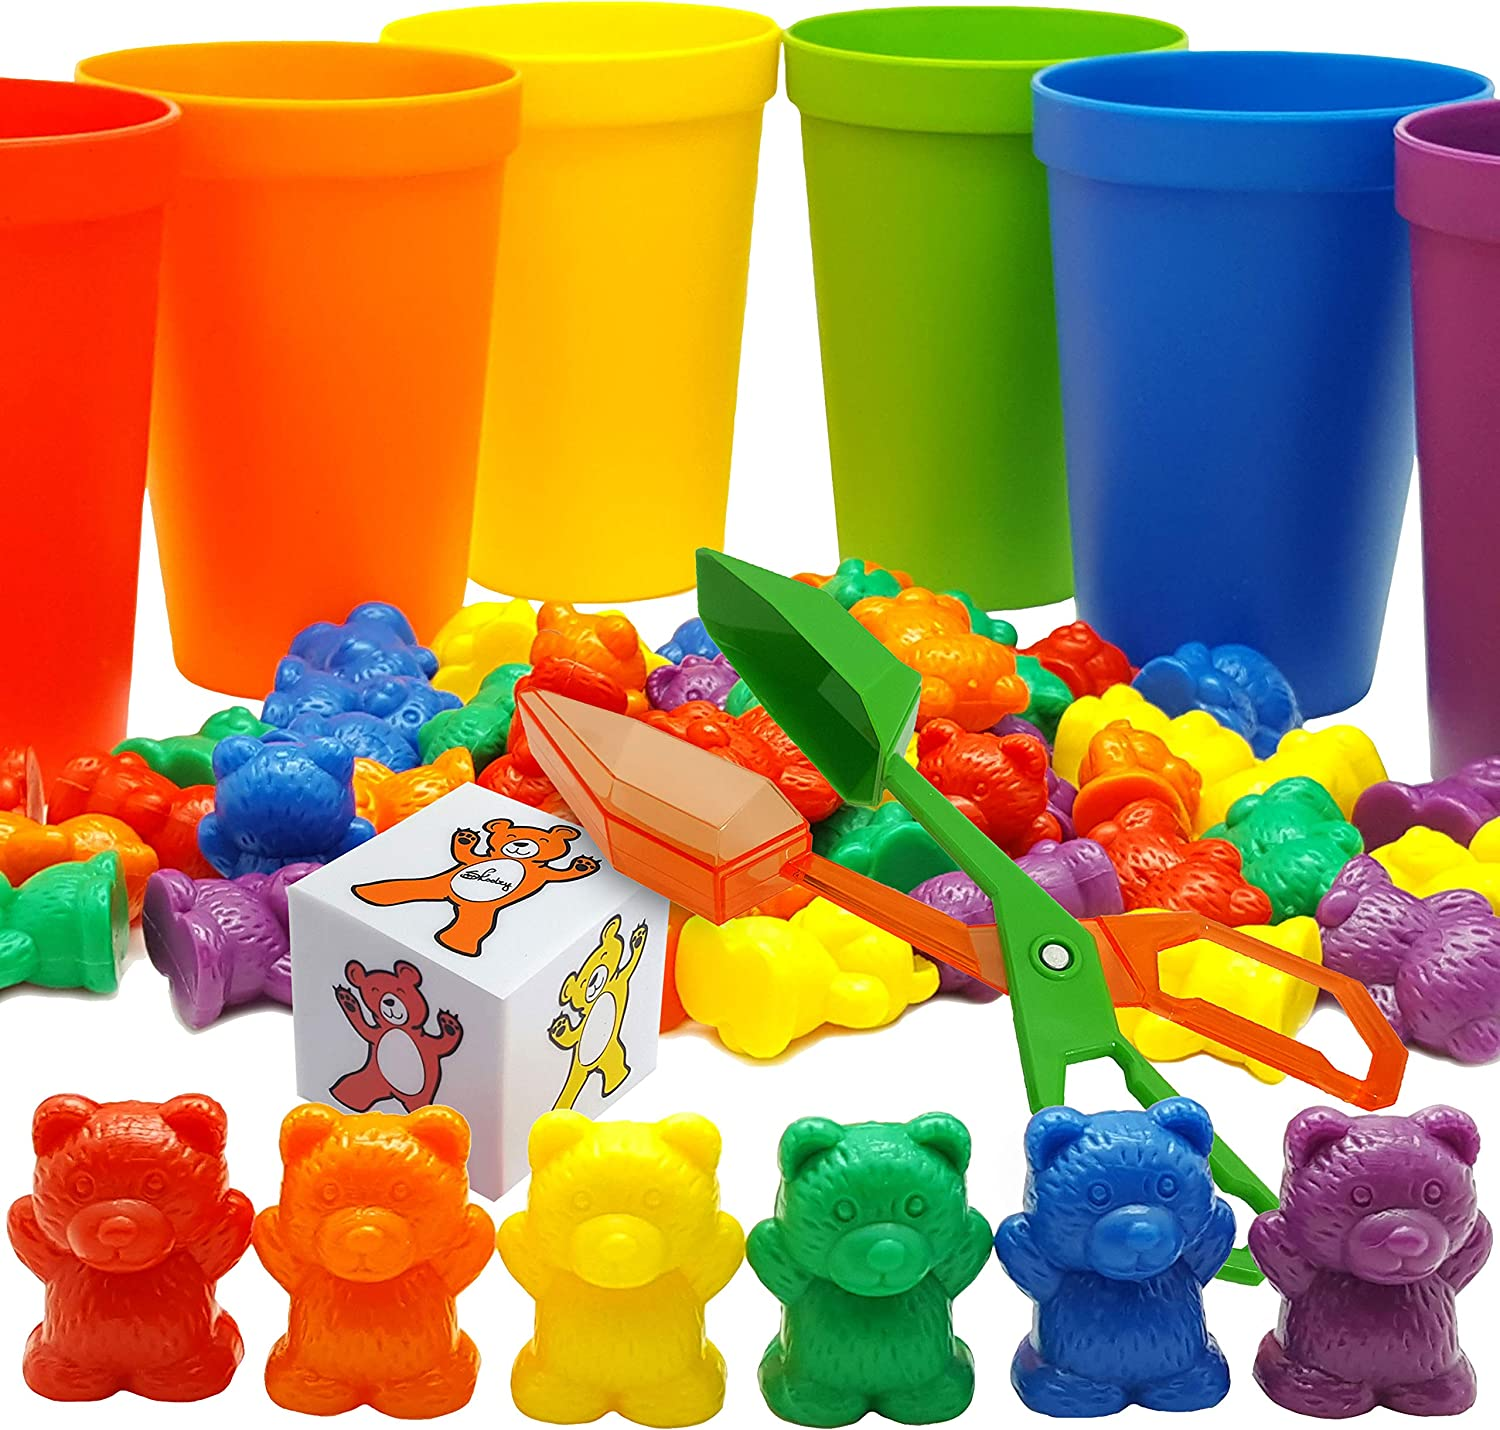 Skoolzy 71-Piece Rainbow Counting Bears with Matching Cups Set $19 Coupon